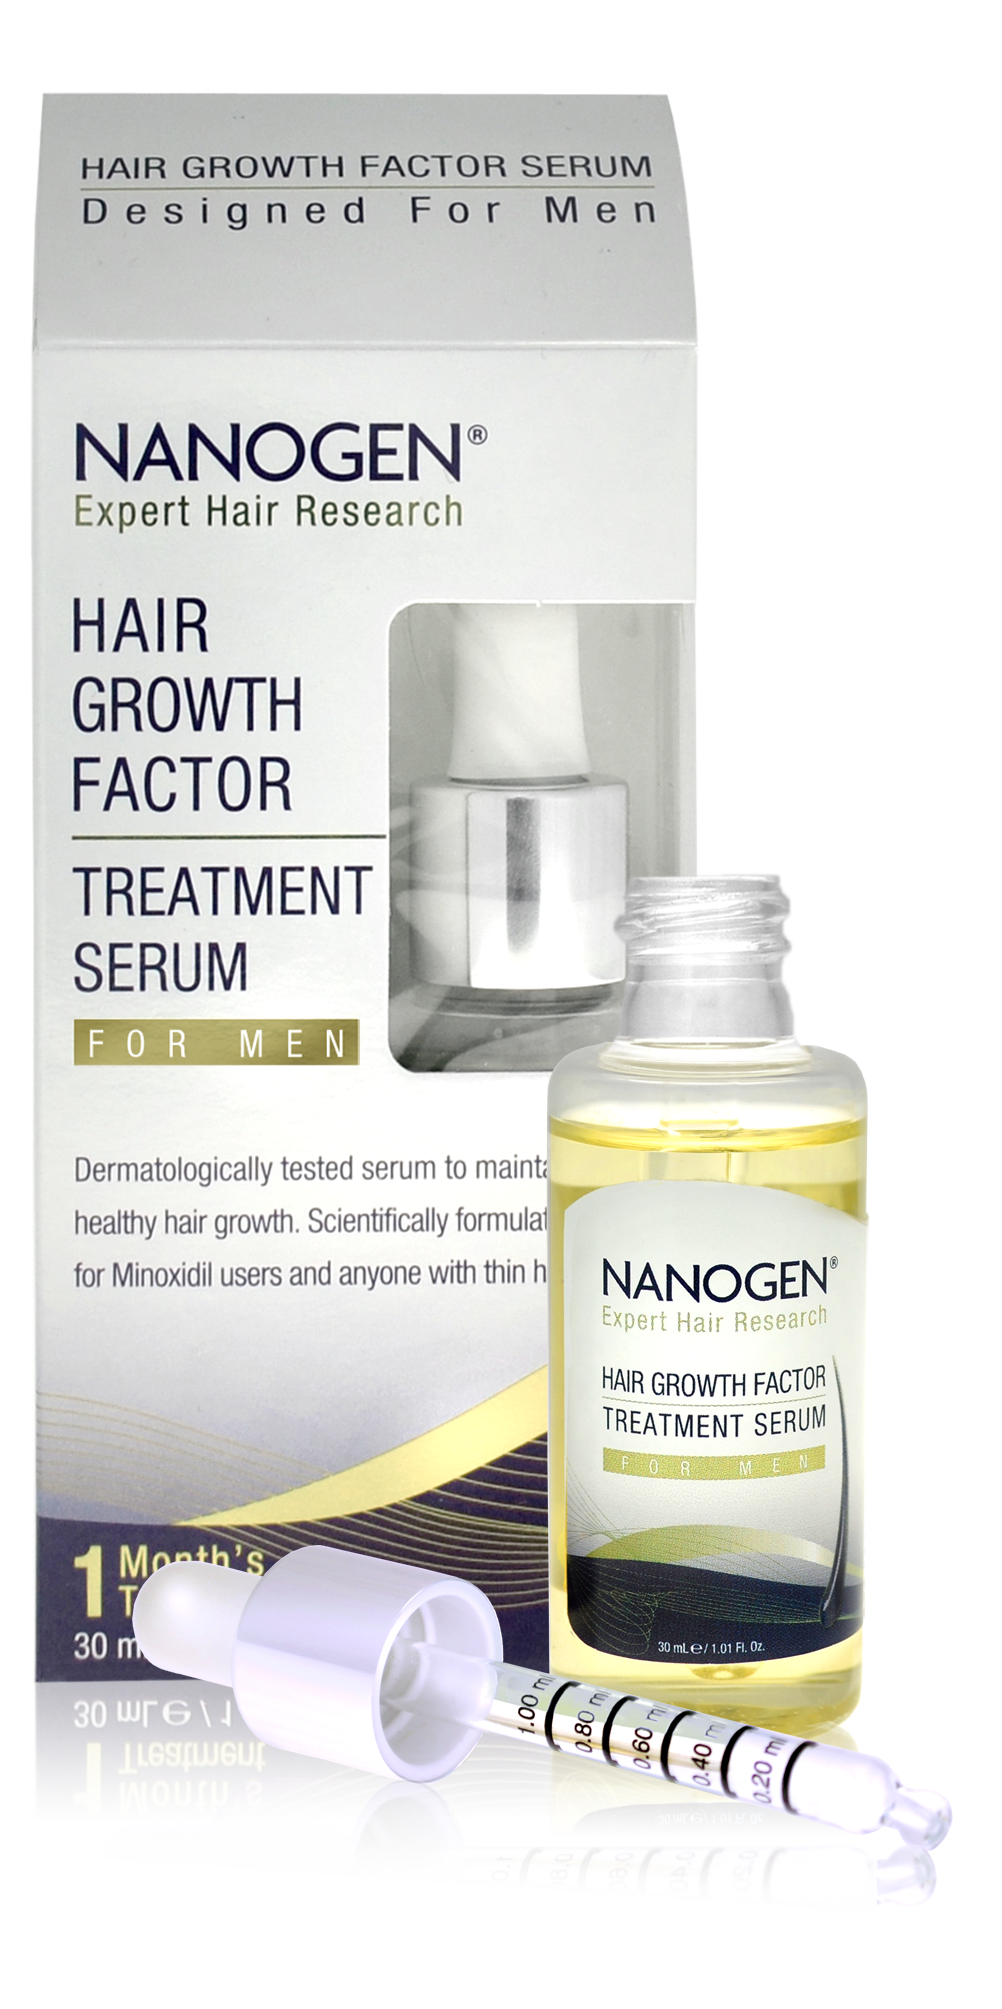 Nanogen Hair Growth Factor Treatment Serum for Men 30ml